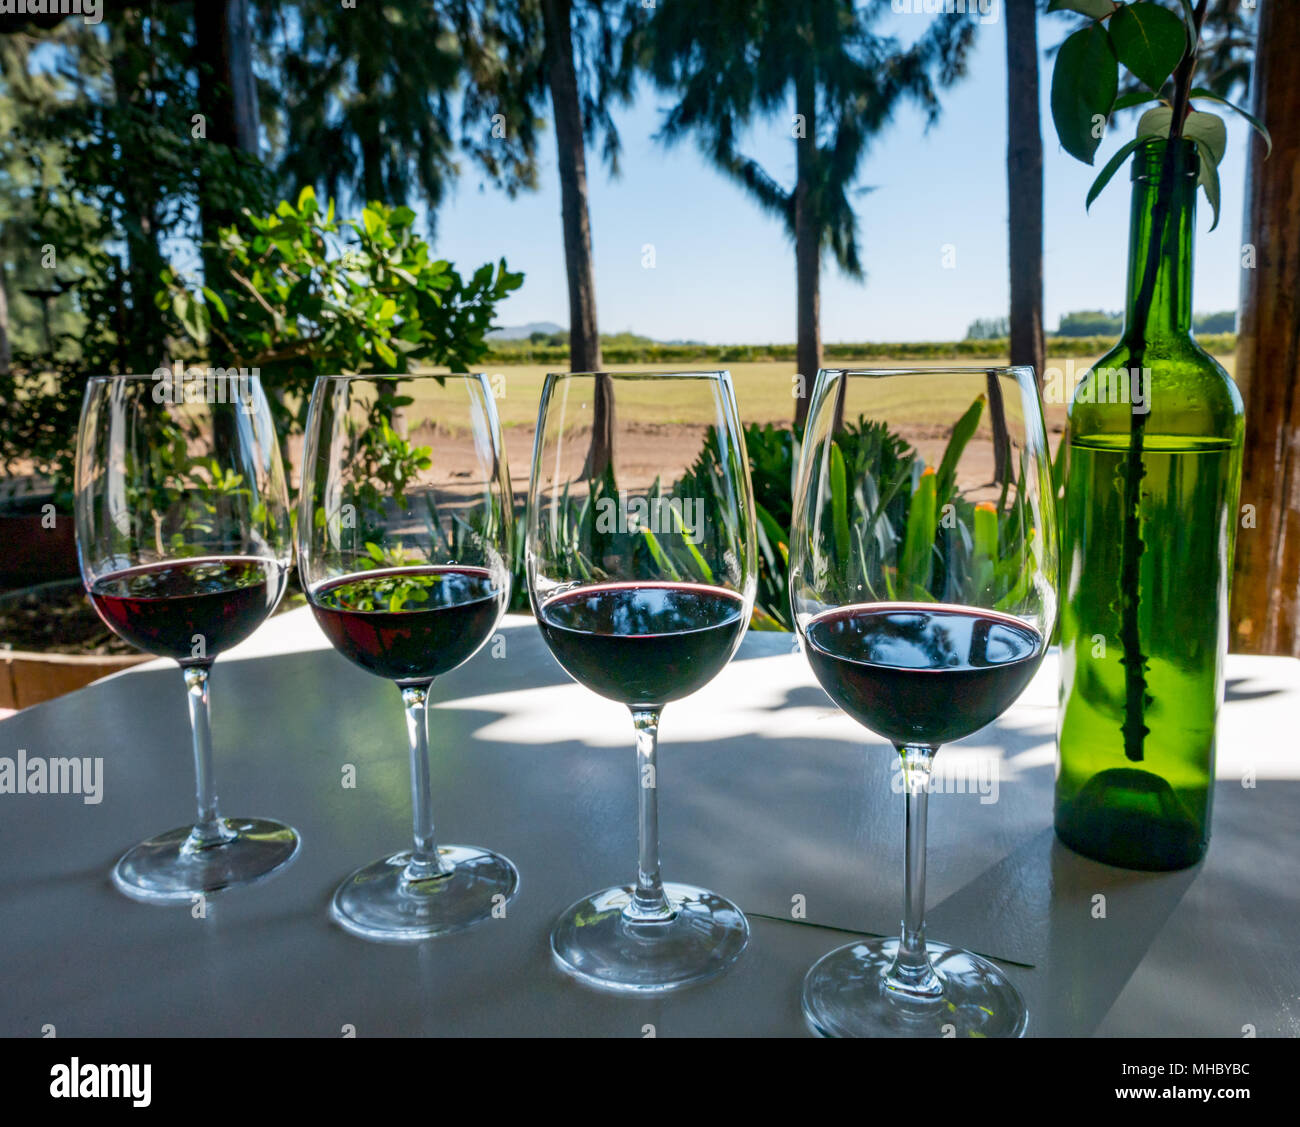 wine-tasting-glasses-outside-porch-at-la